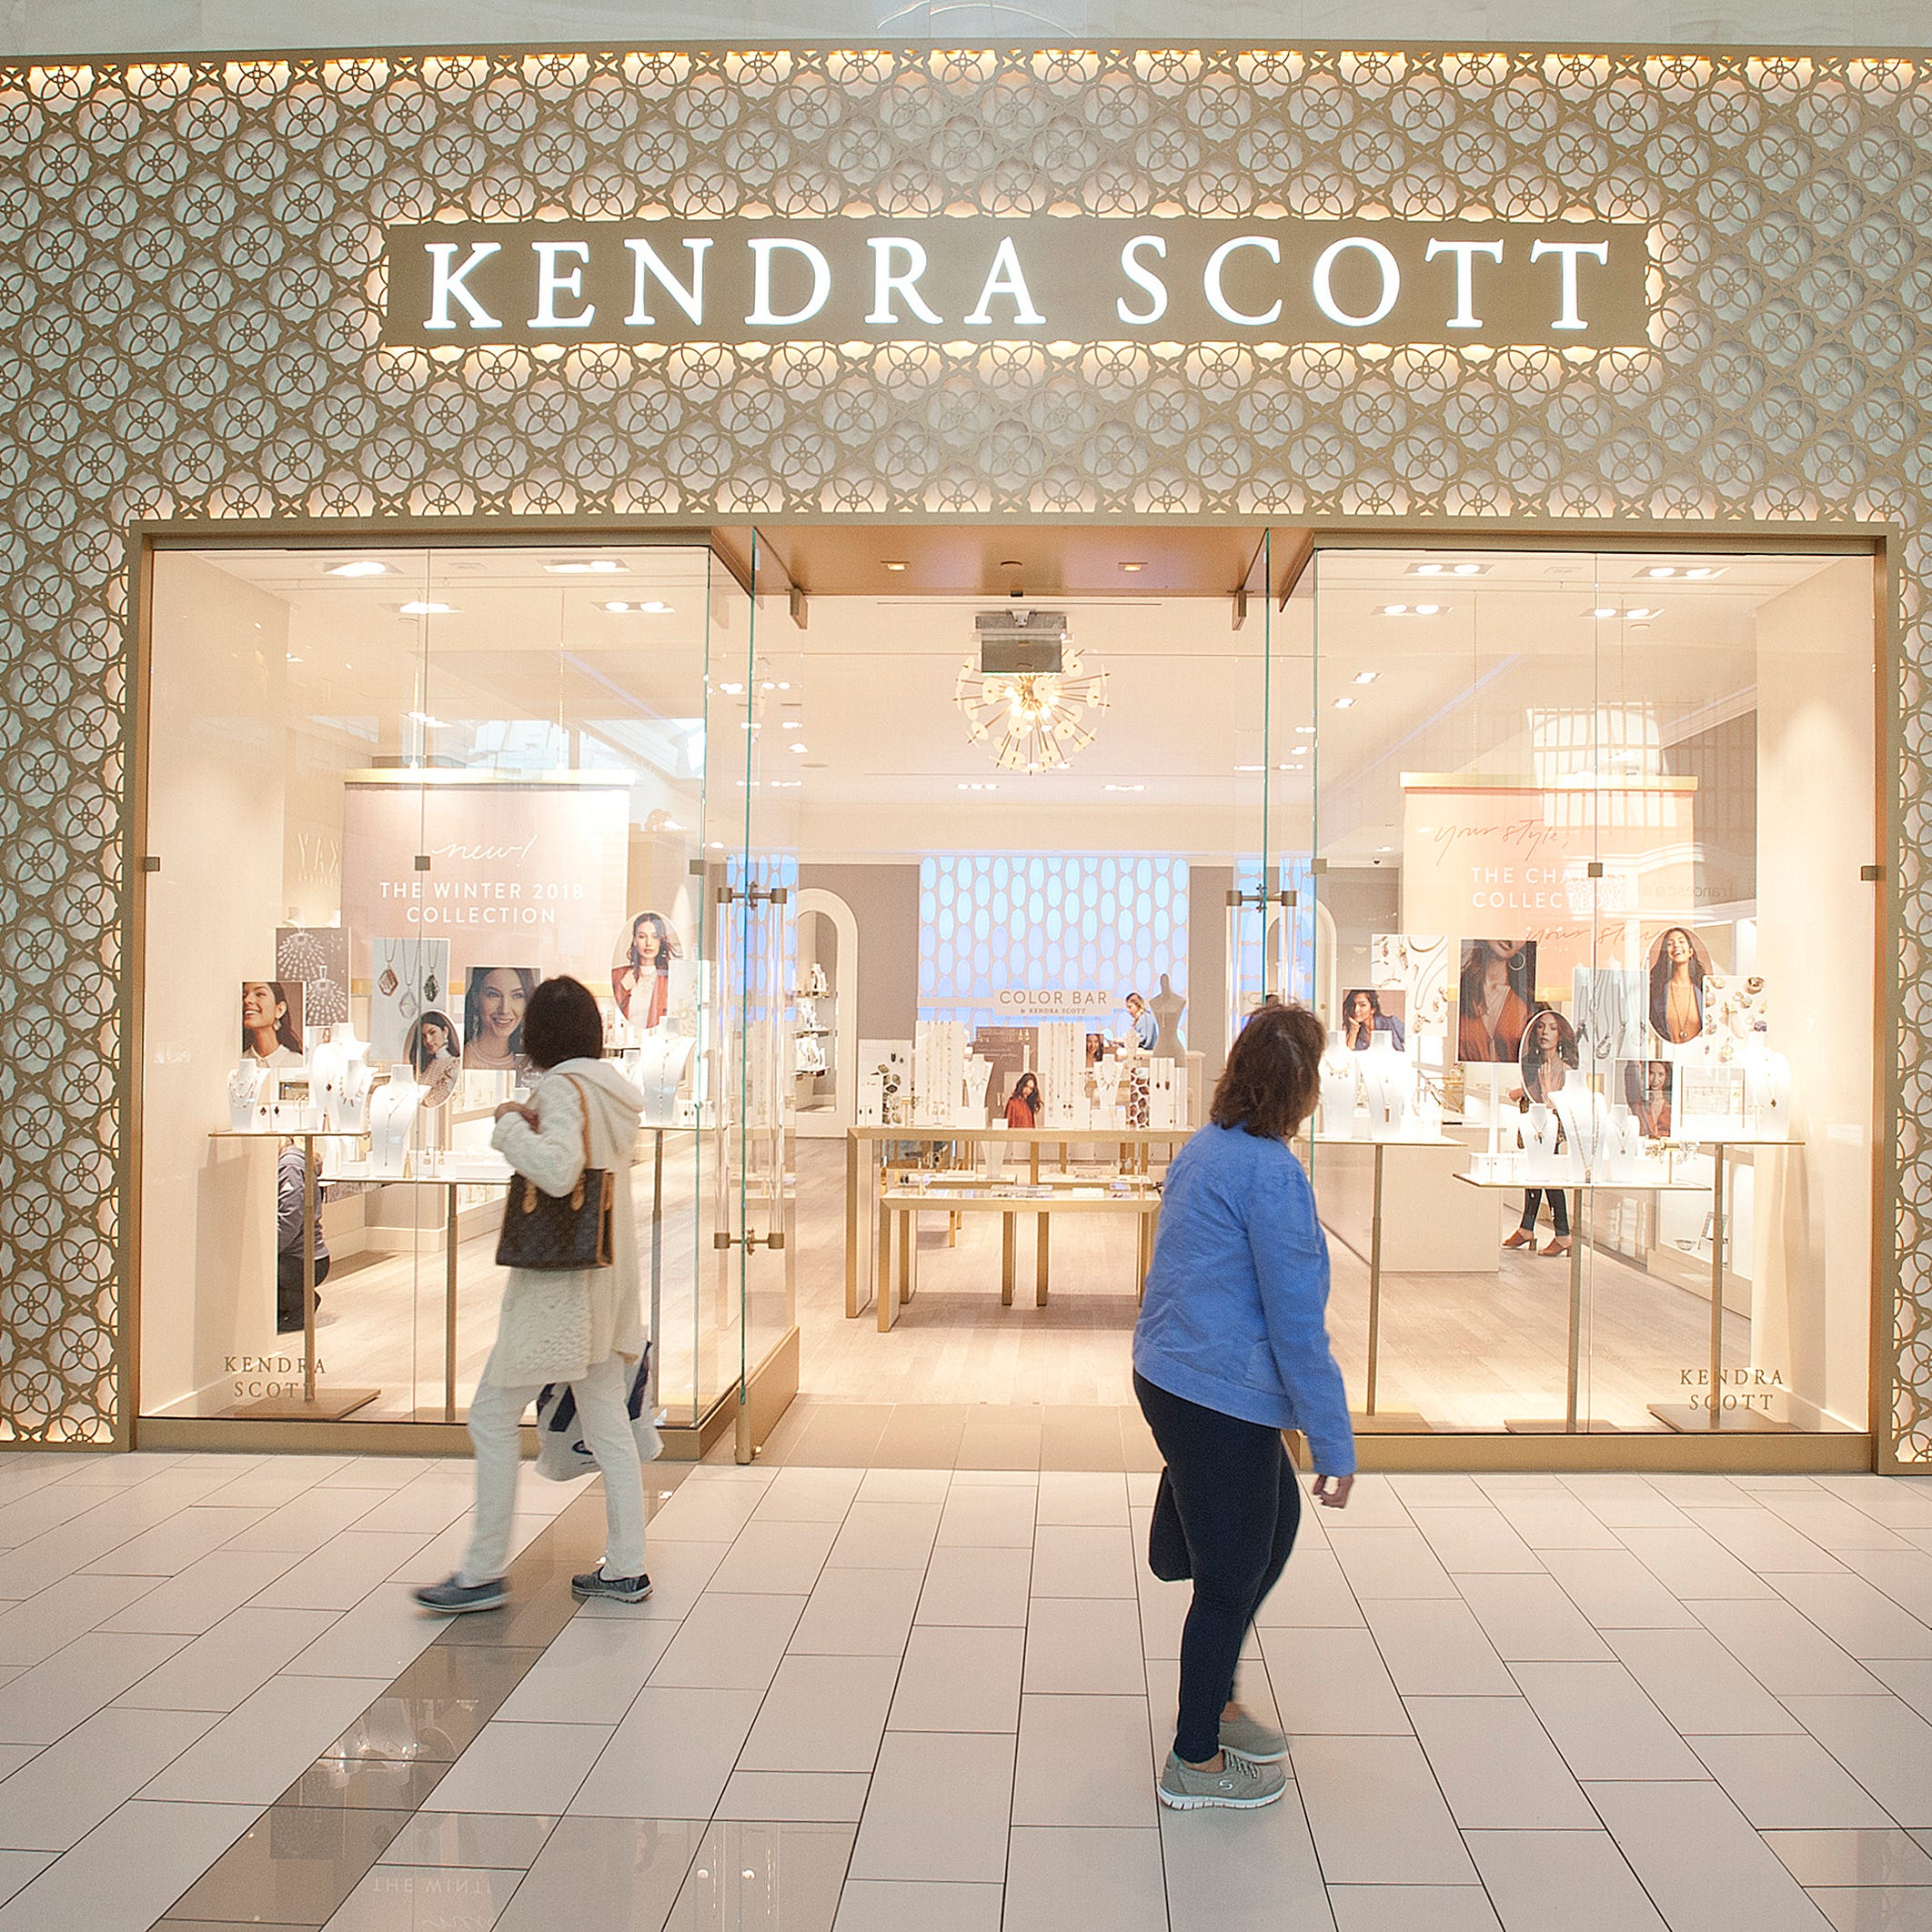 Kendra Scott jewelry is opening at Jordan Creek Town Center